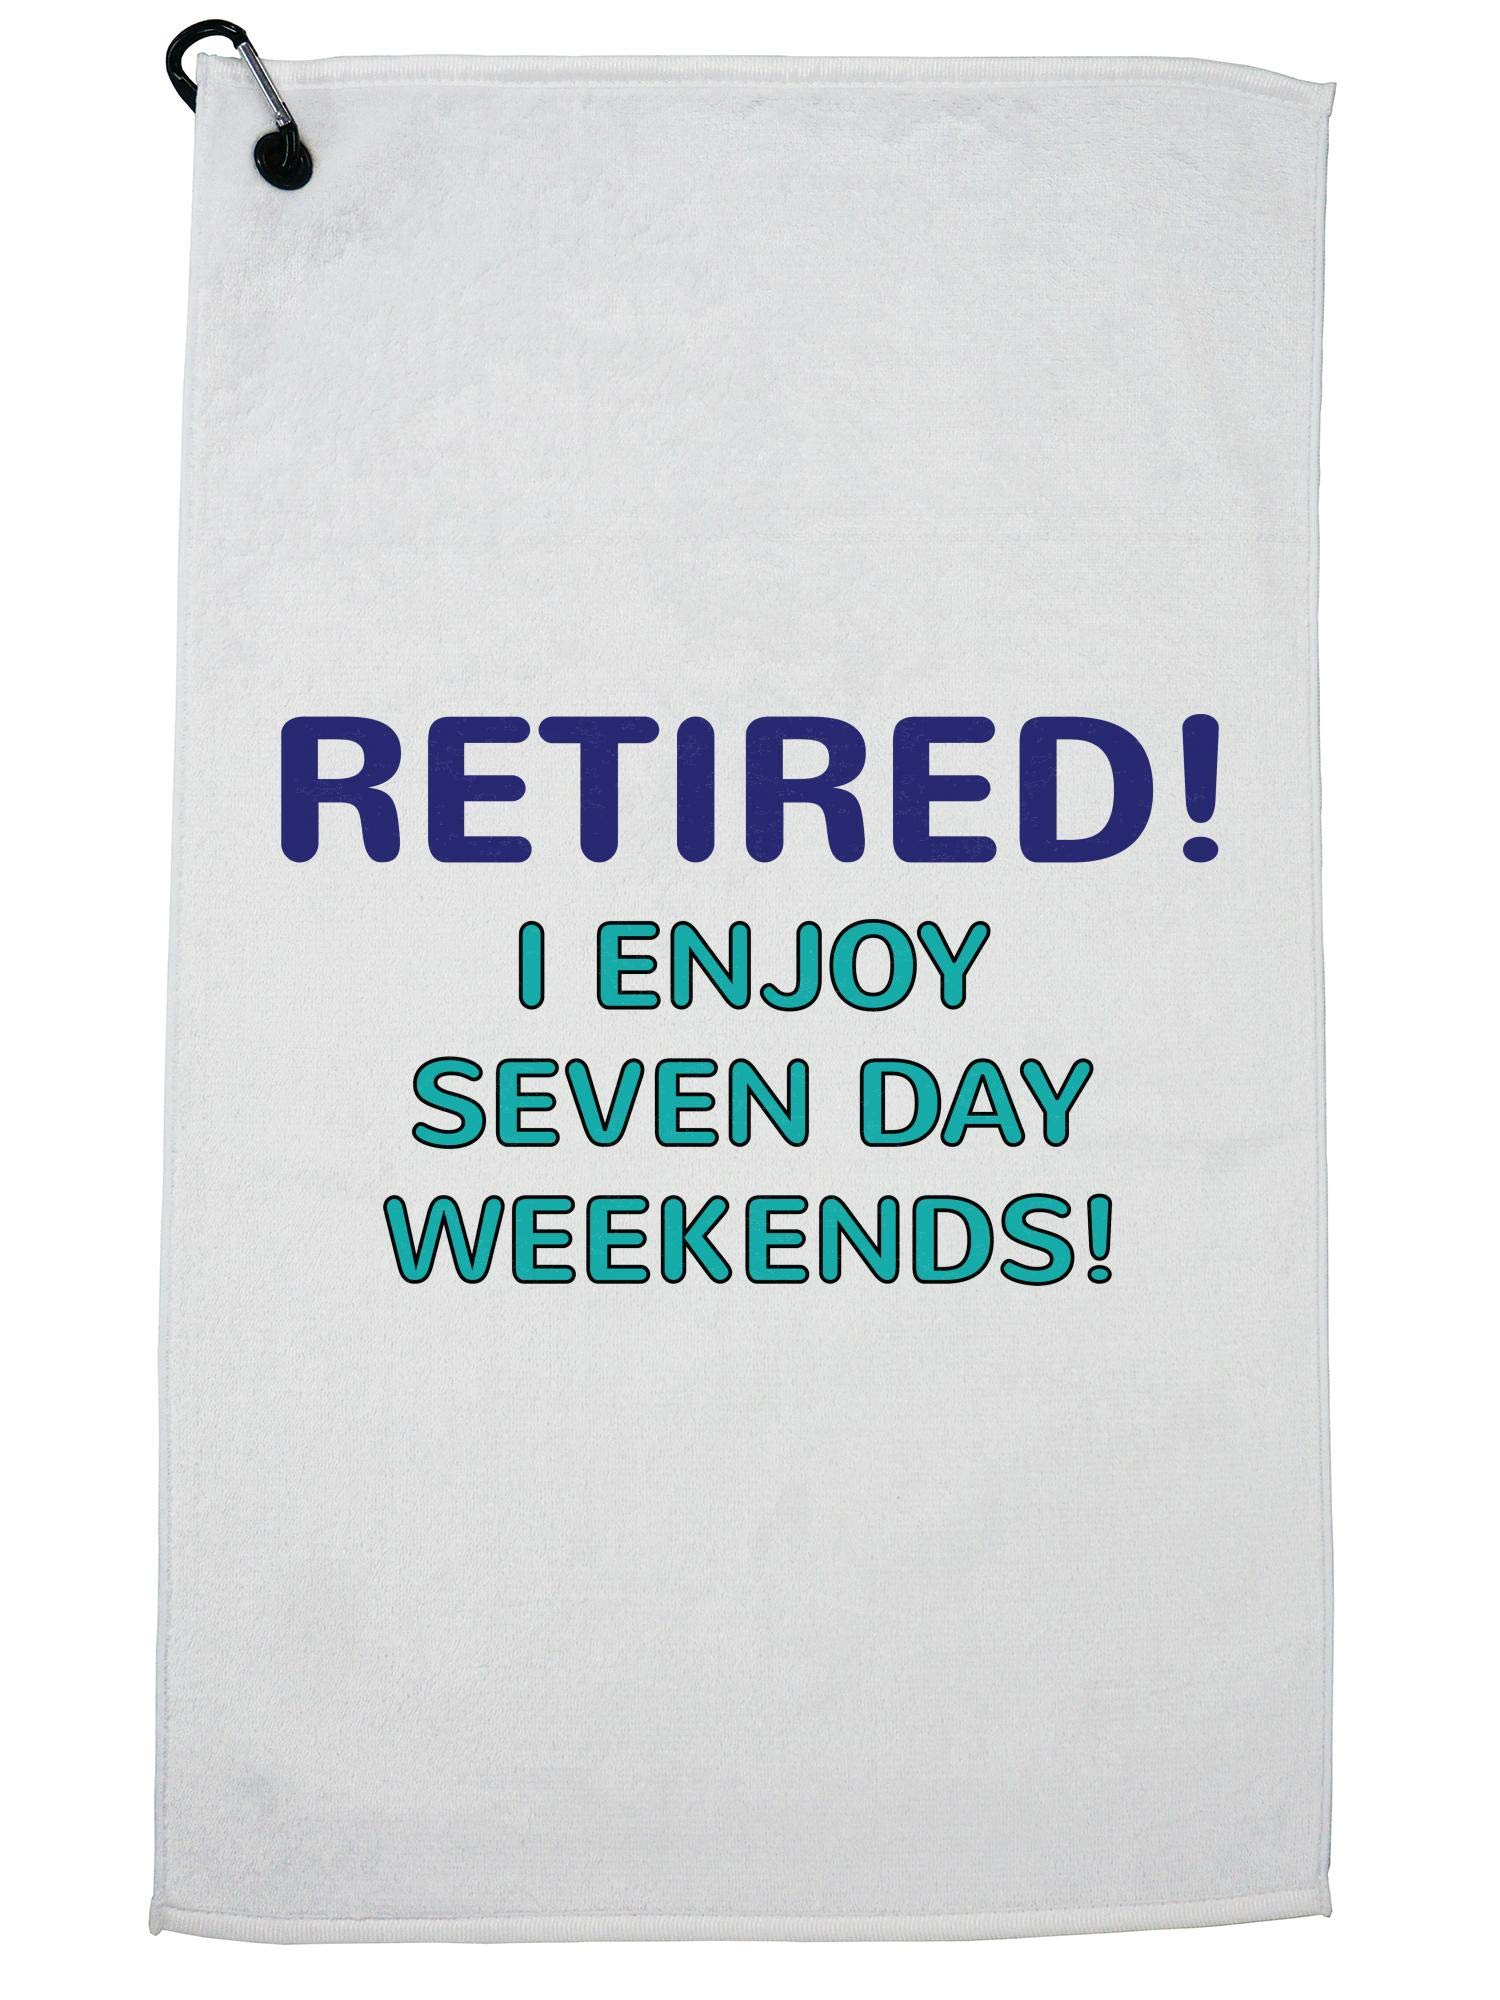 Hollywood Thread Retired! Enjoy Seven Day Weekends! - Retirement Golf Towel with Carabiner Clip